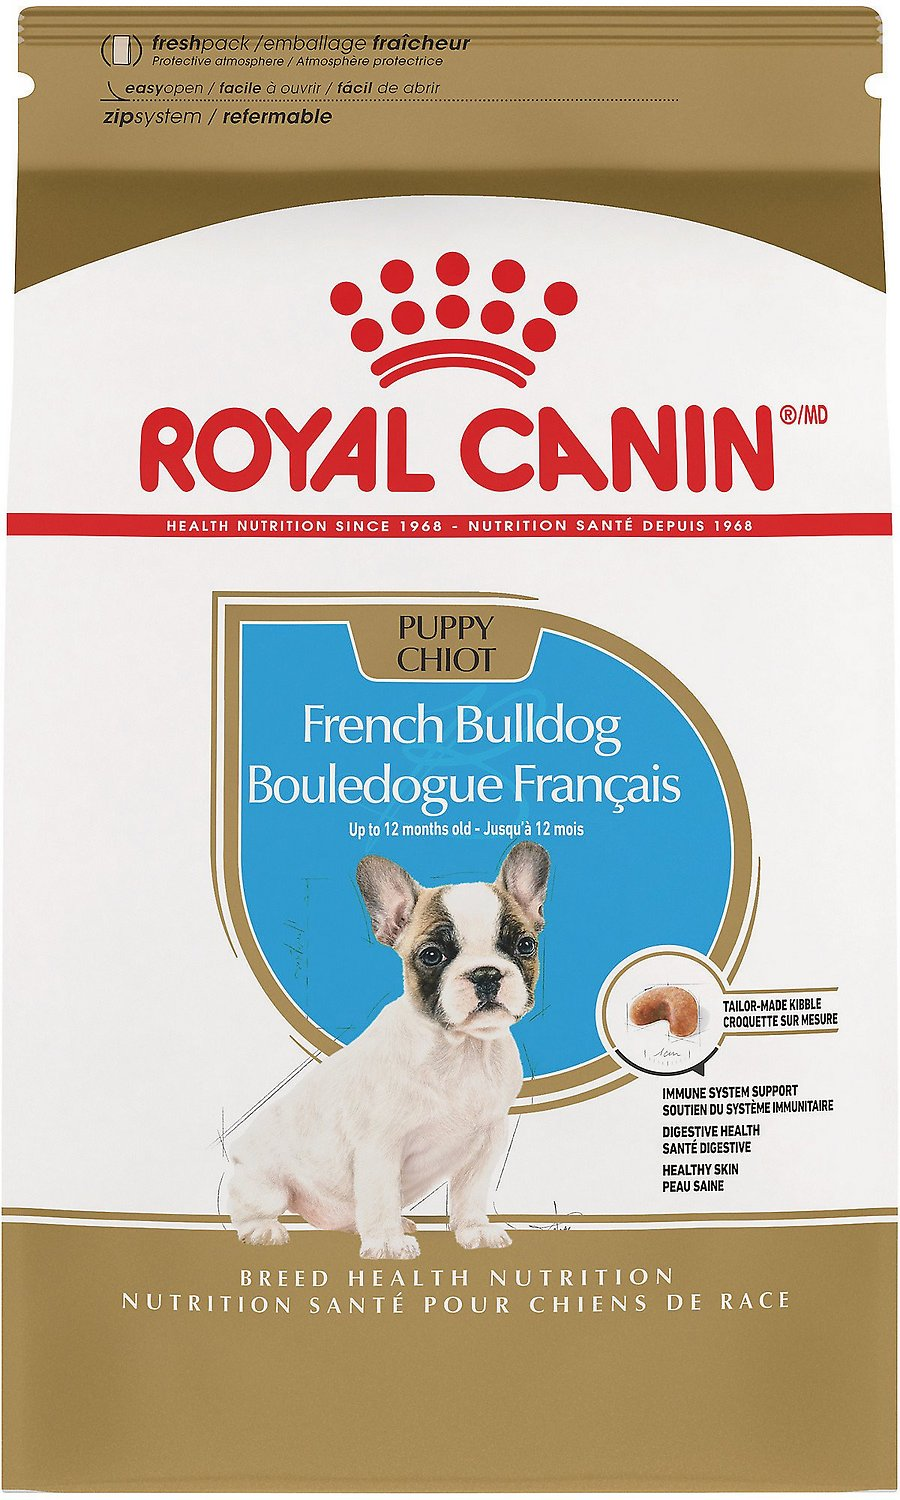 Royal canin french bulldog puppy dry dog food 3 lb bag chewy roll over image to zoom in nvjuhfo Choice Image